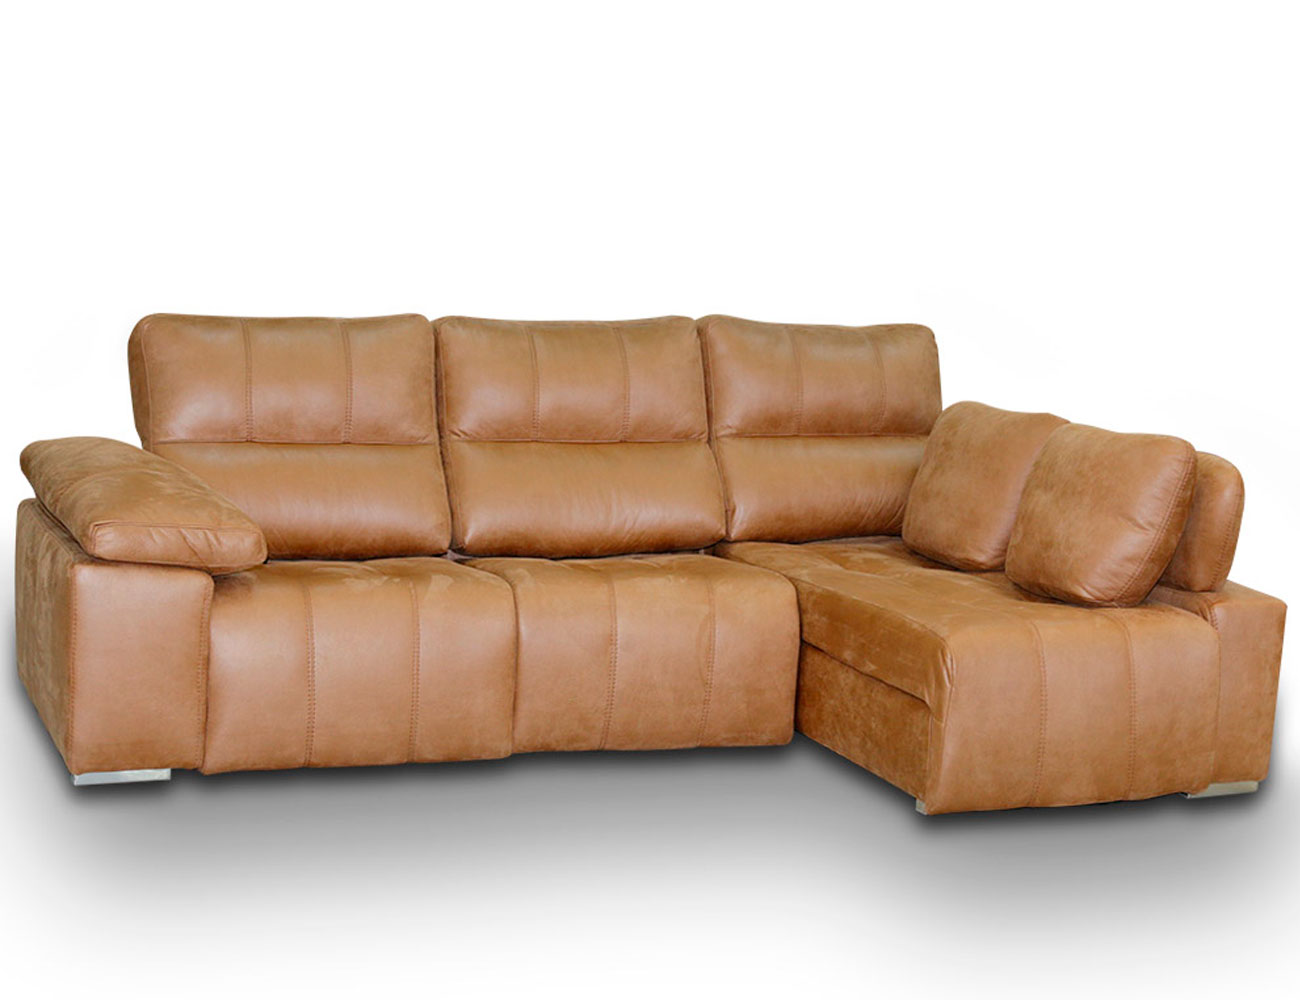 Sofa chaiselongue relax 2 motores anti manchas24